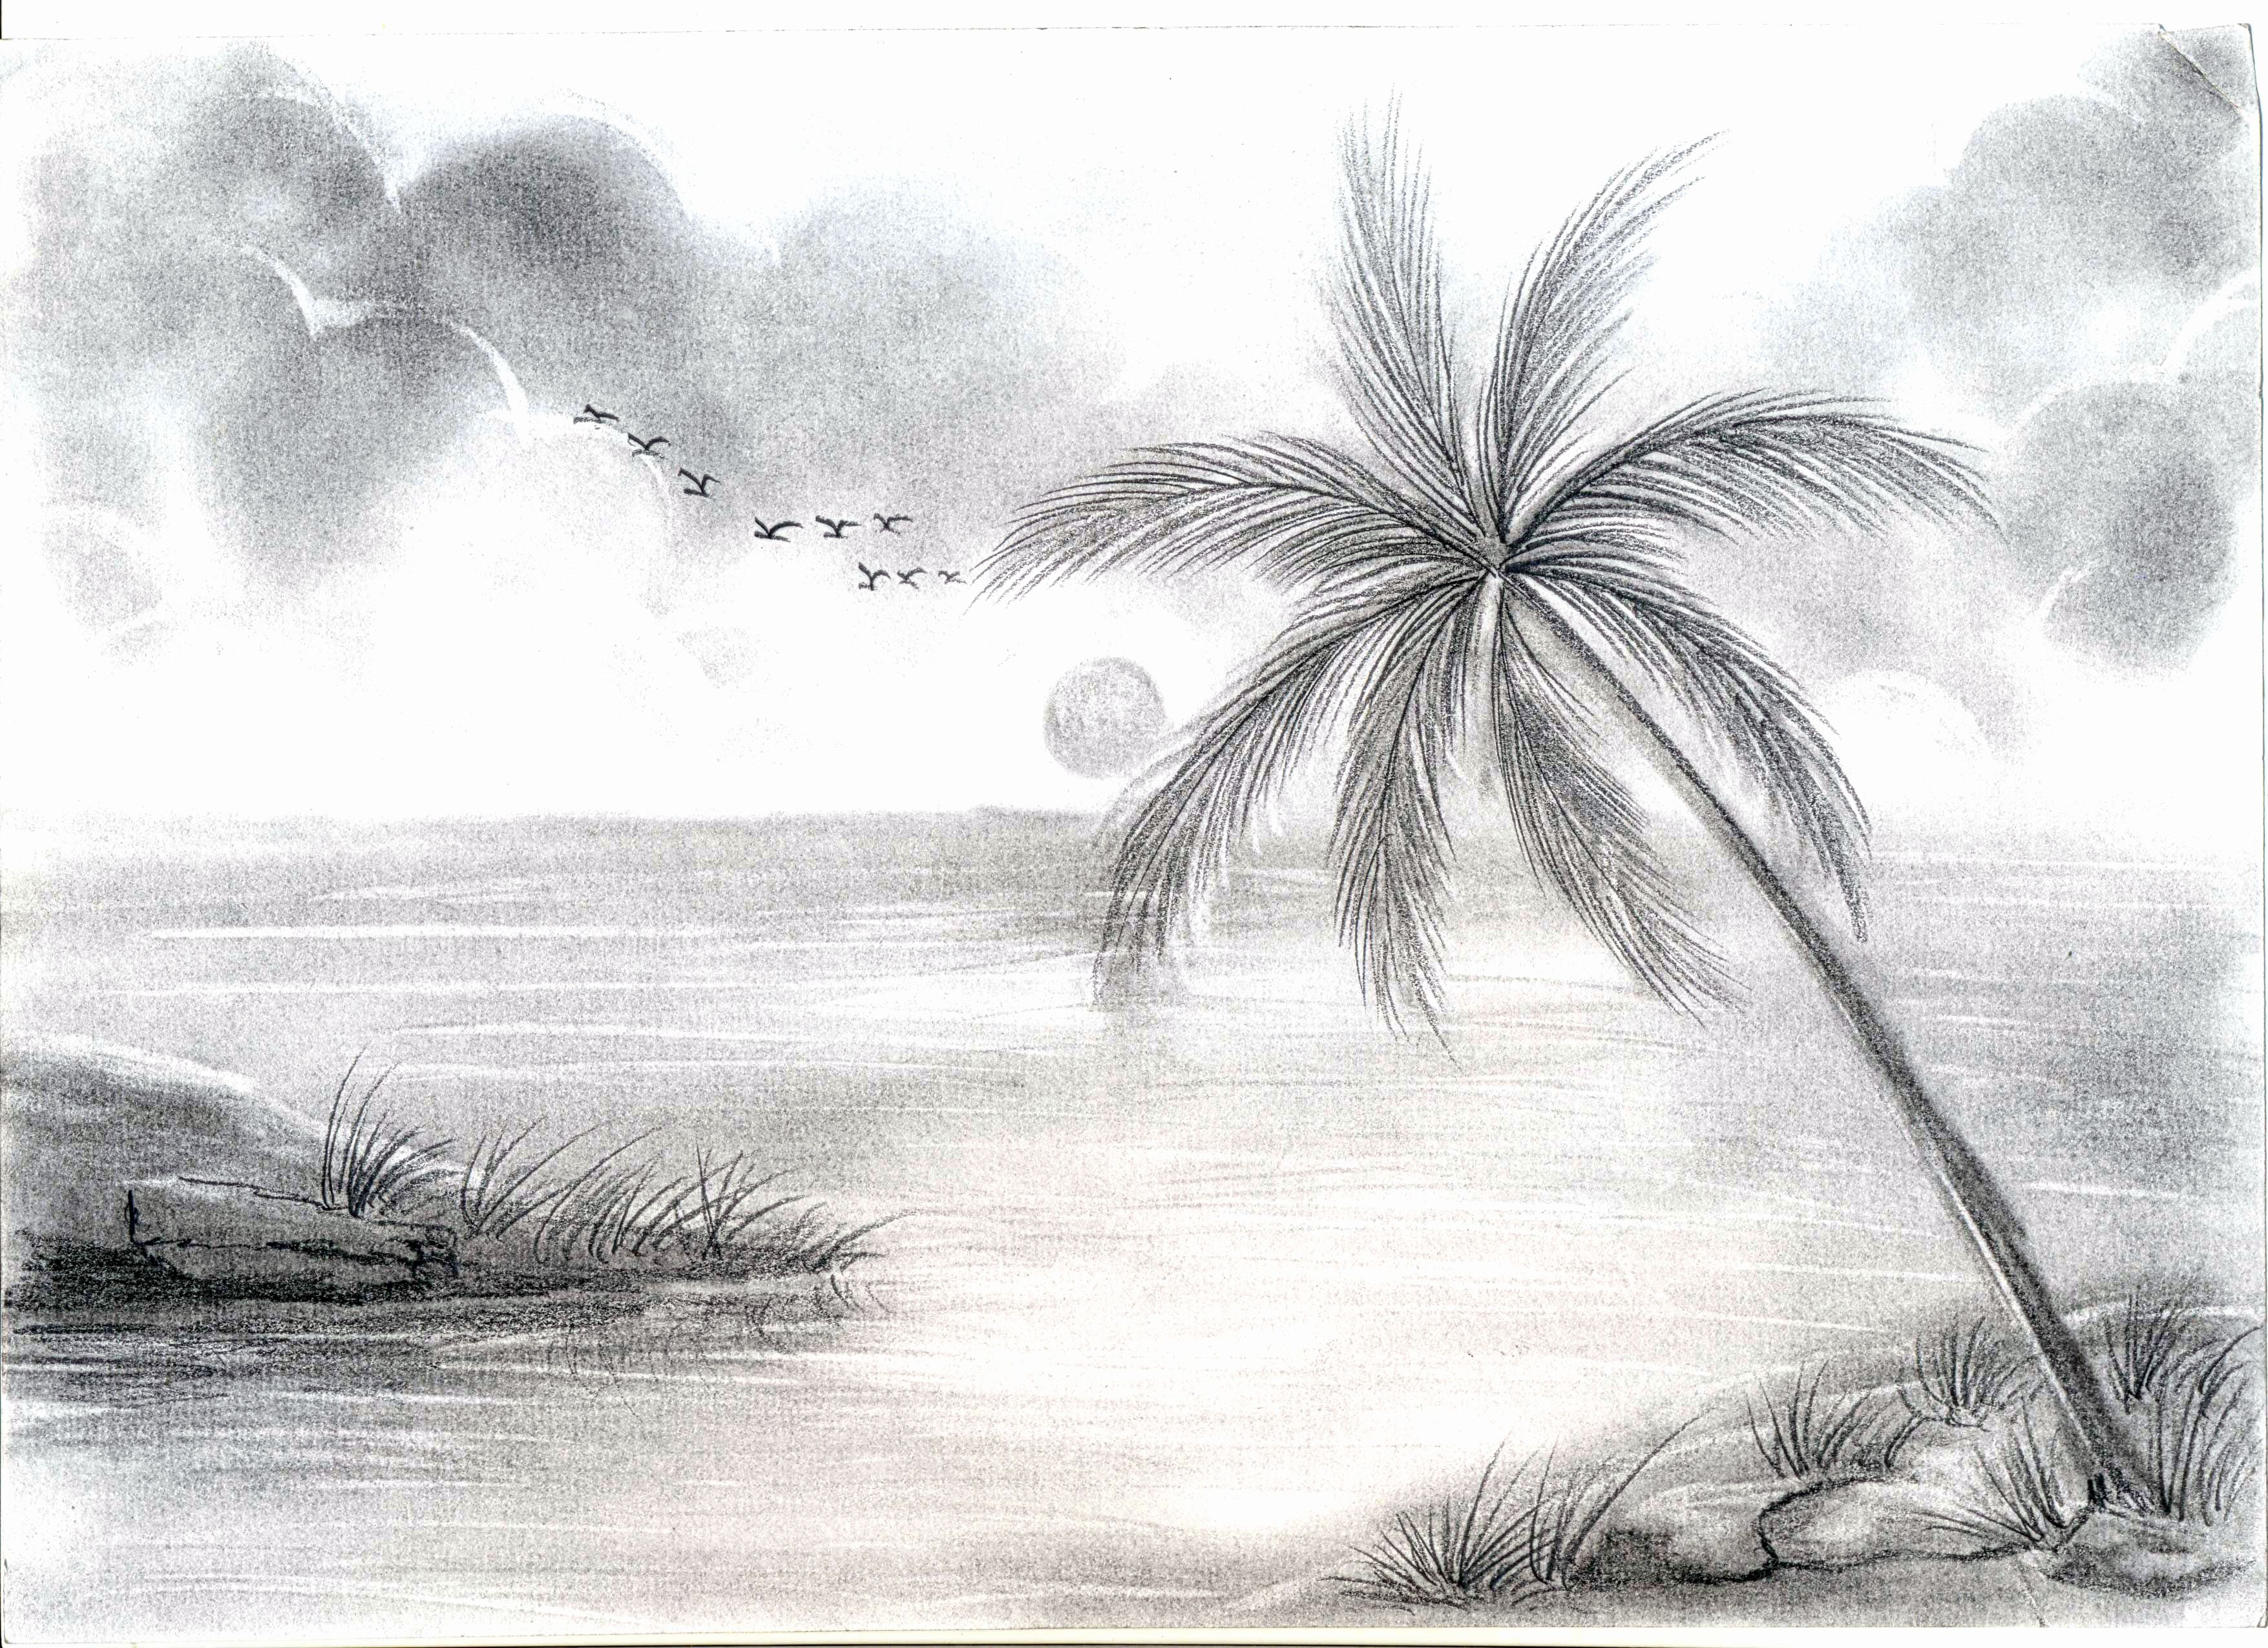 Landscape Drawing Ideas Awesome Nature Scenry Sketch Ideas ...